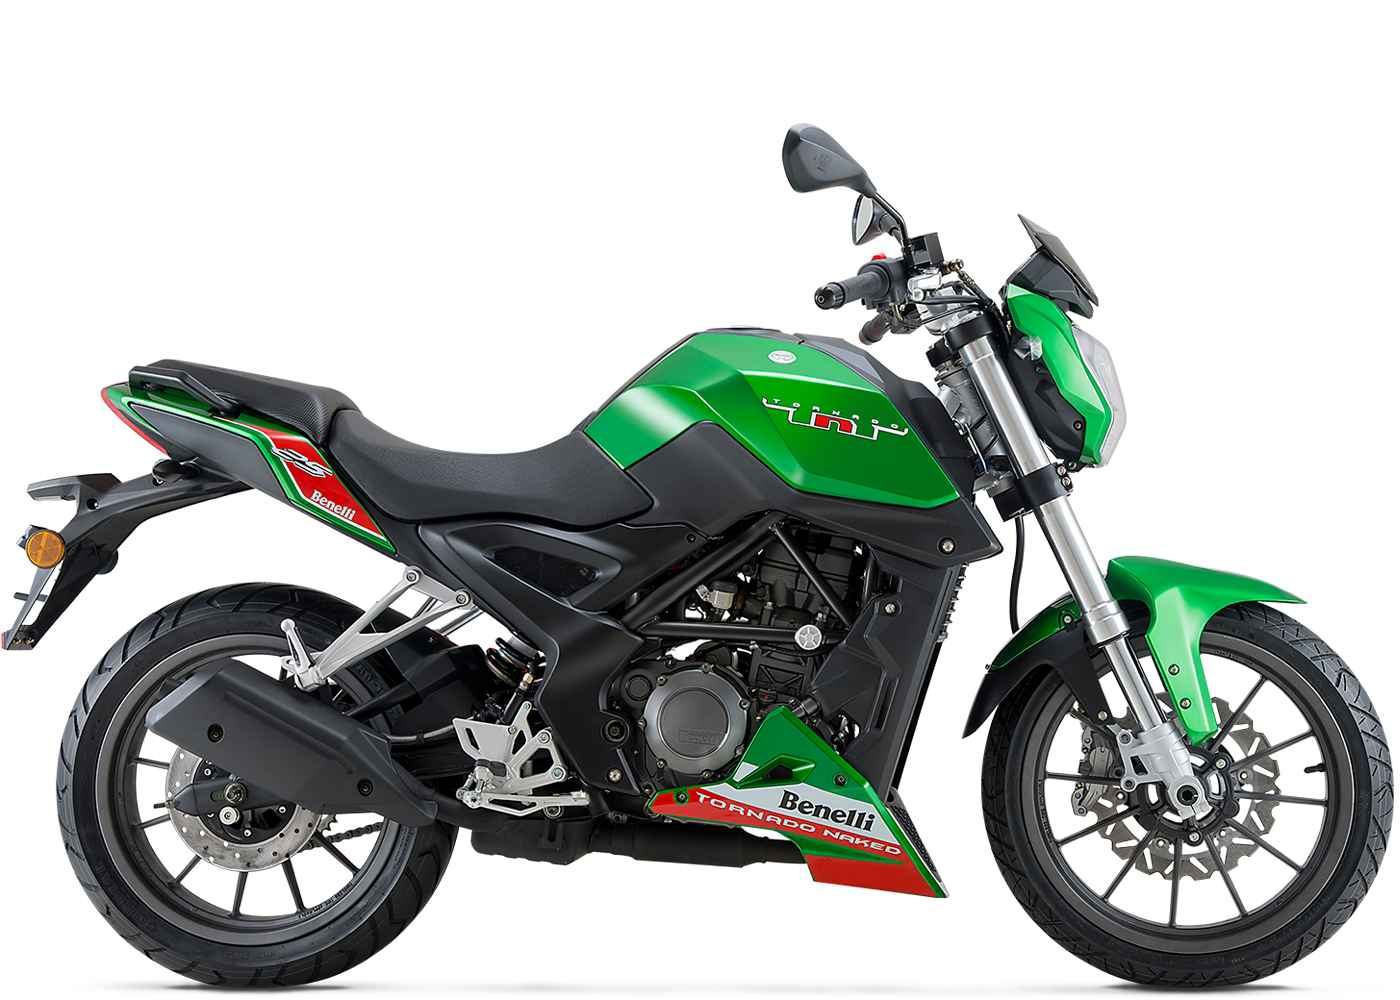 green-benelli_tnt25_productperfilpight_1400x1000_Red.png